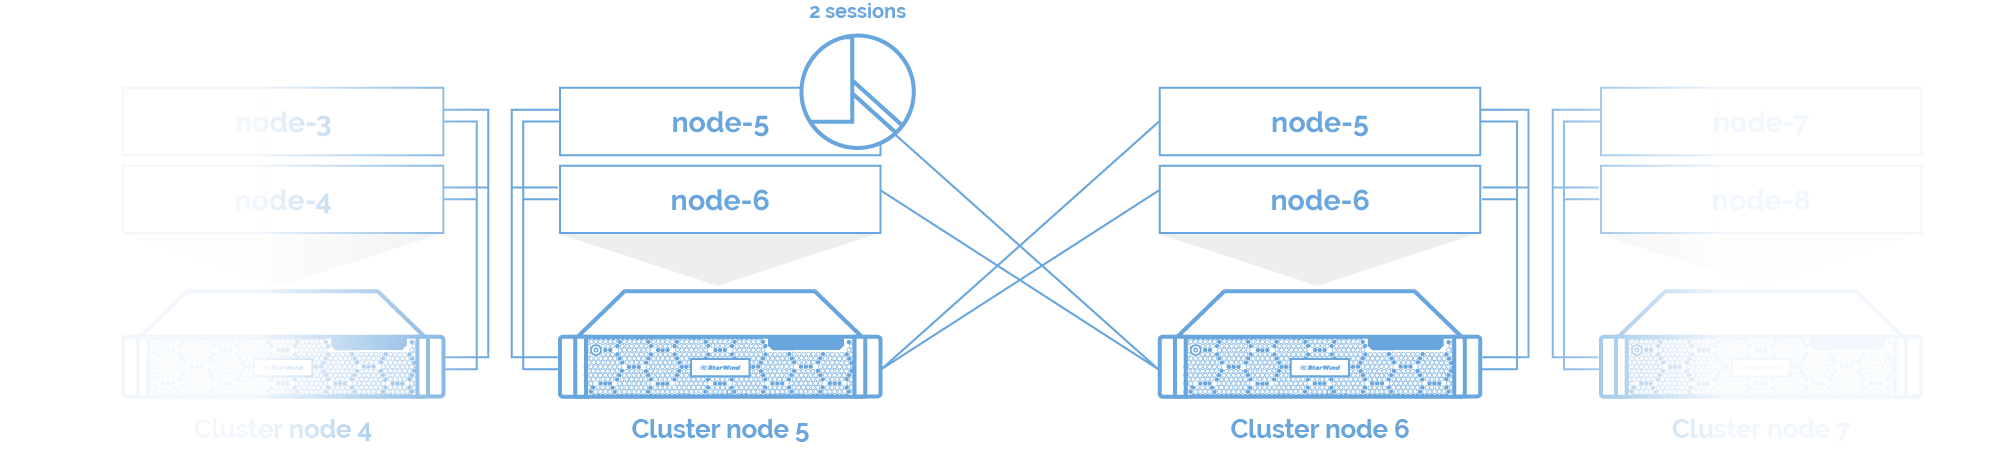 iSCSI sessions interconnection diagram